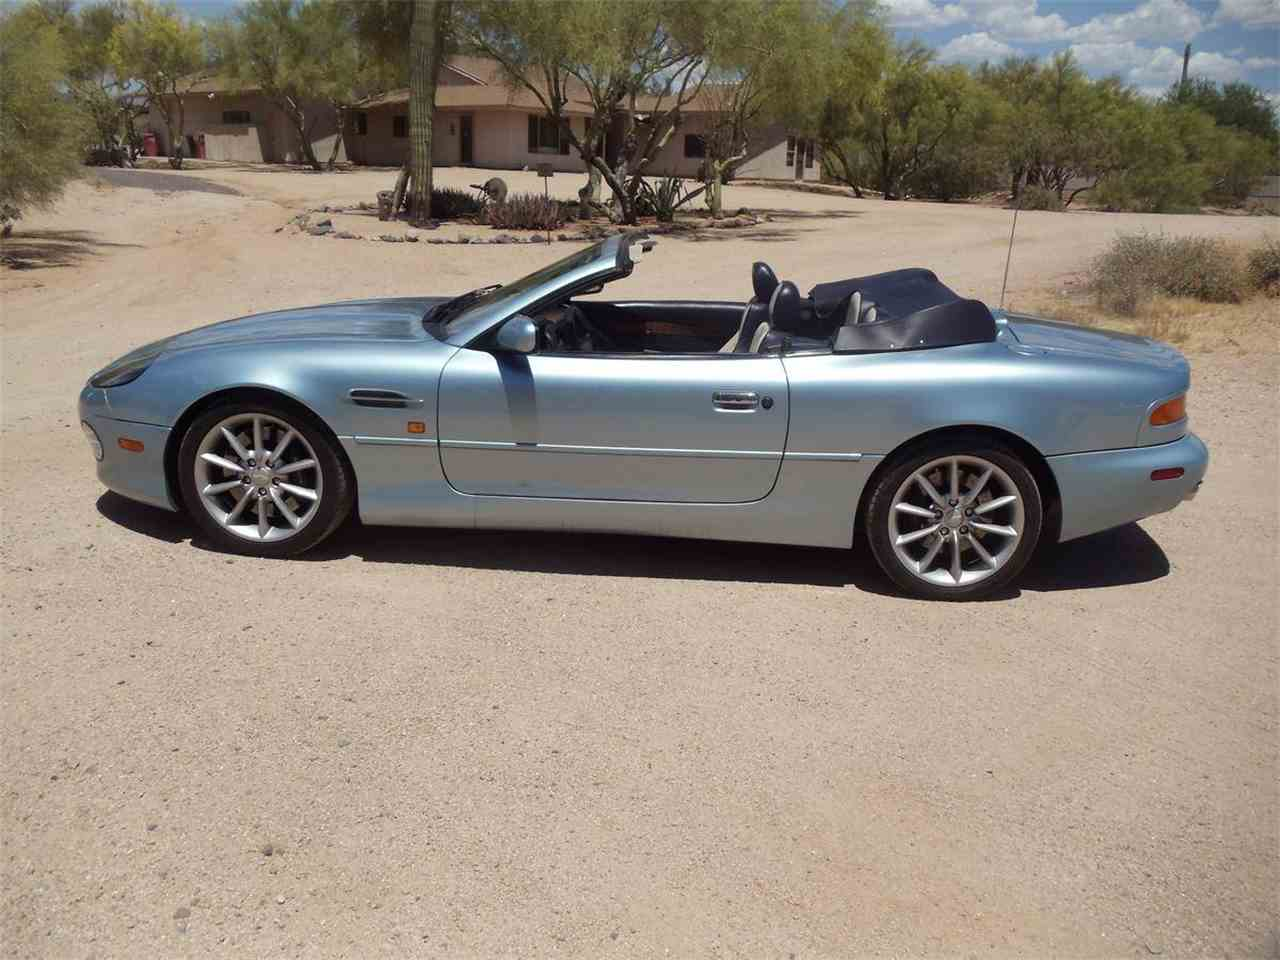 Large Picture of 2000 Aston Martin DB7 Vantage Volante located in Arizona Auction Vehicle Offered by Autostore Unique - L5VQ